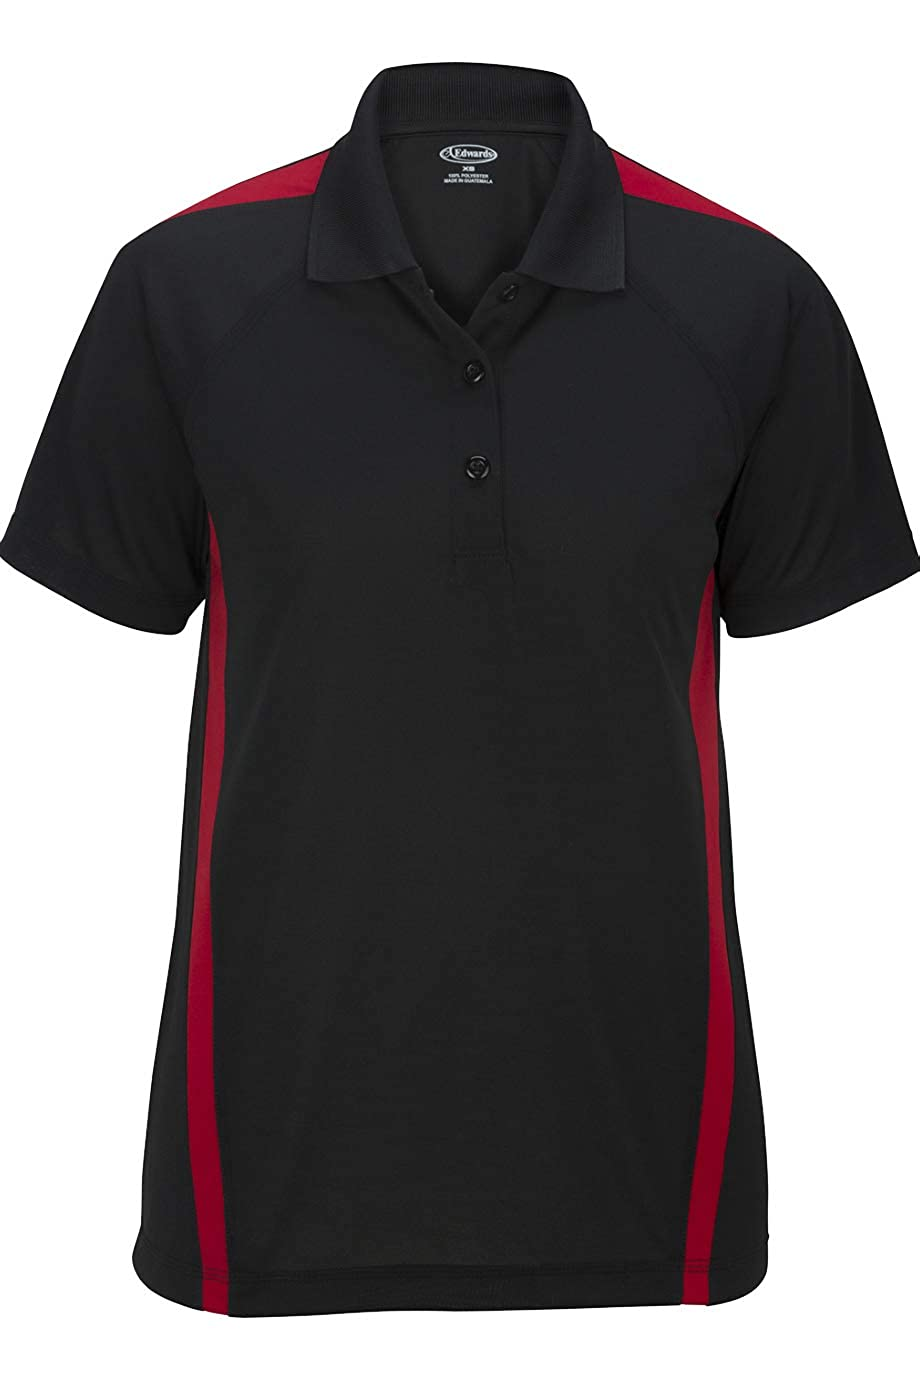 Edwards Ladies SNAG-Proof Color Block Short Sleeve Polo